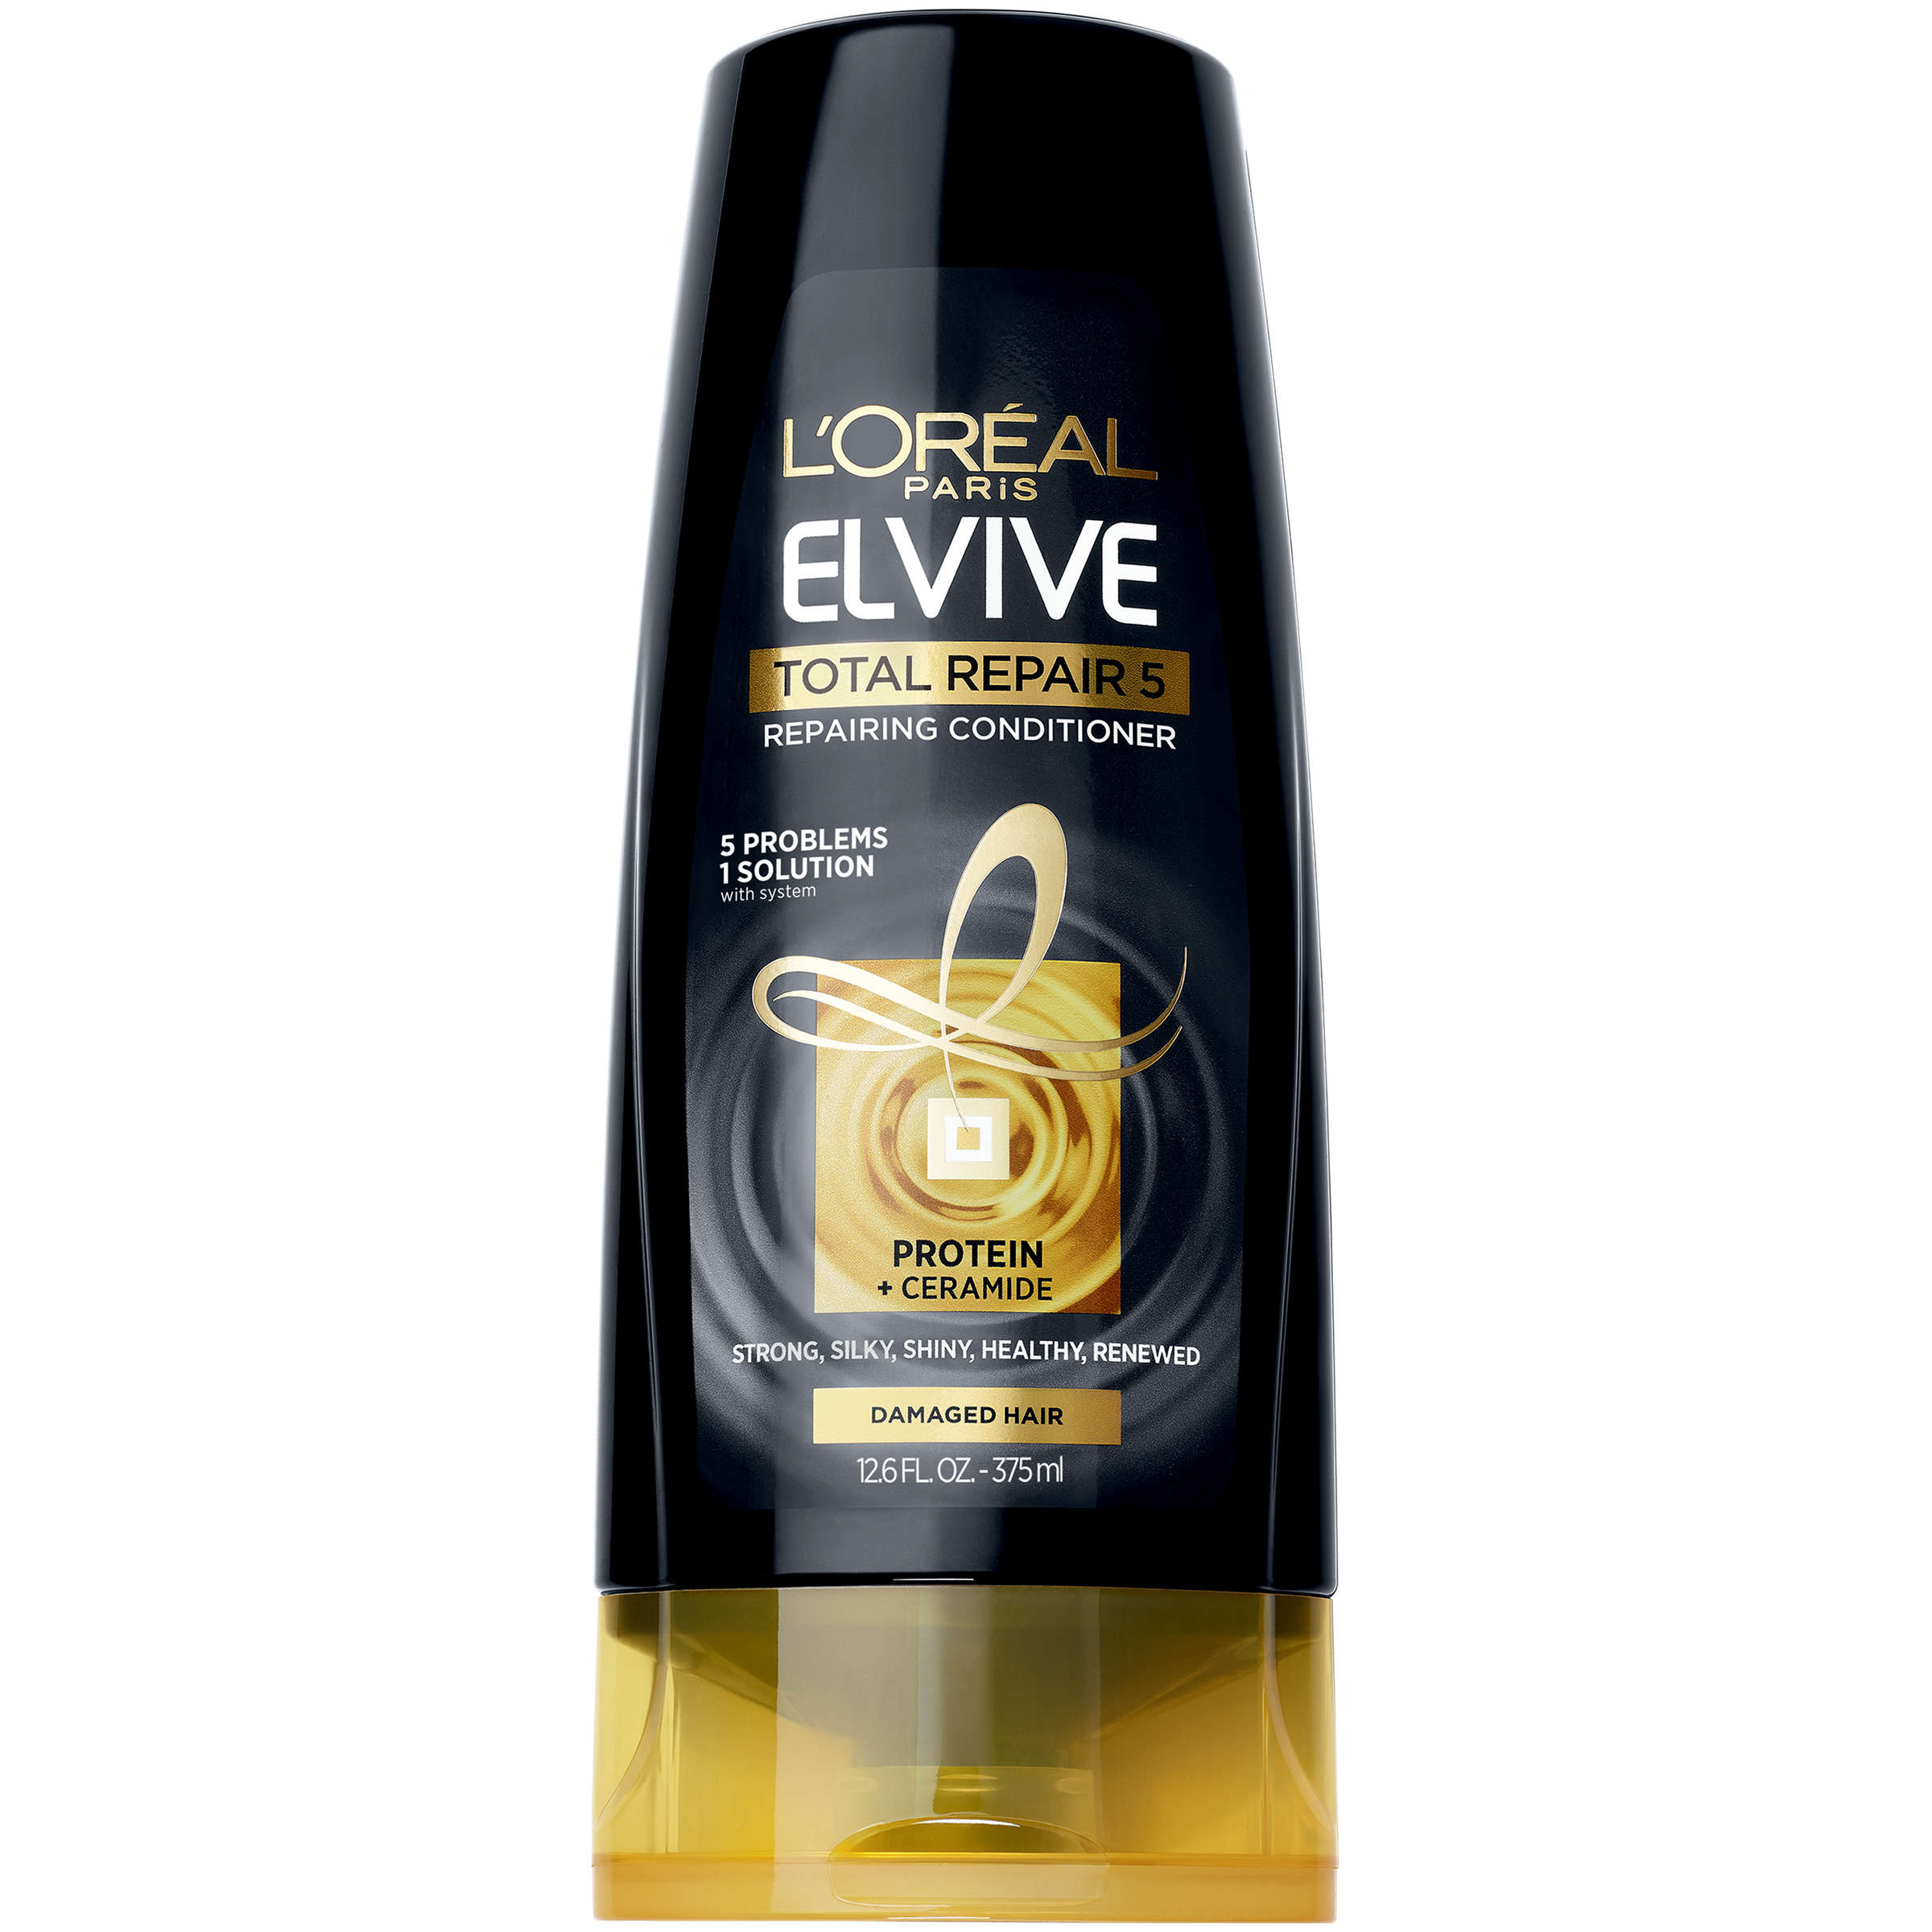 L'Oreal Paris Elvive Total Repair 5 Repairing Conditioner 12.6 FL OZ